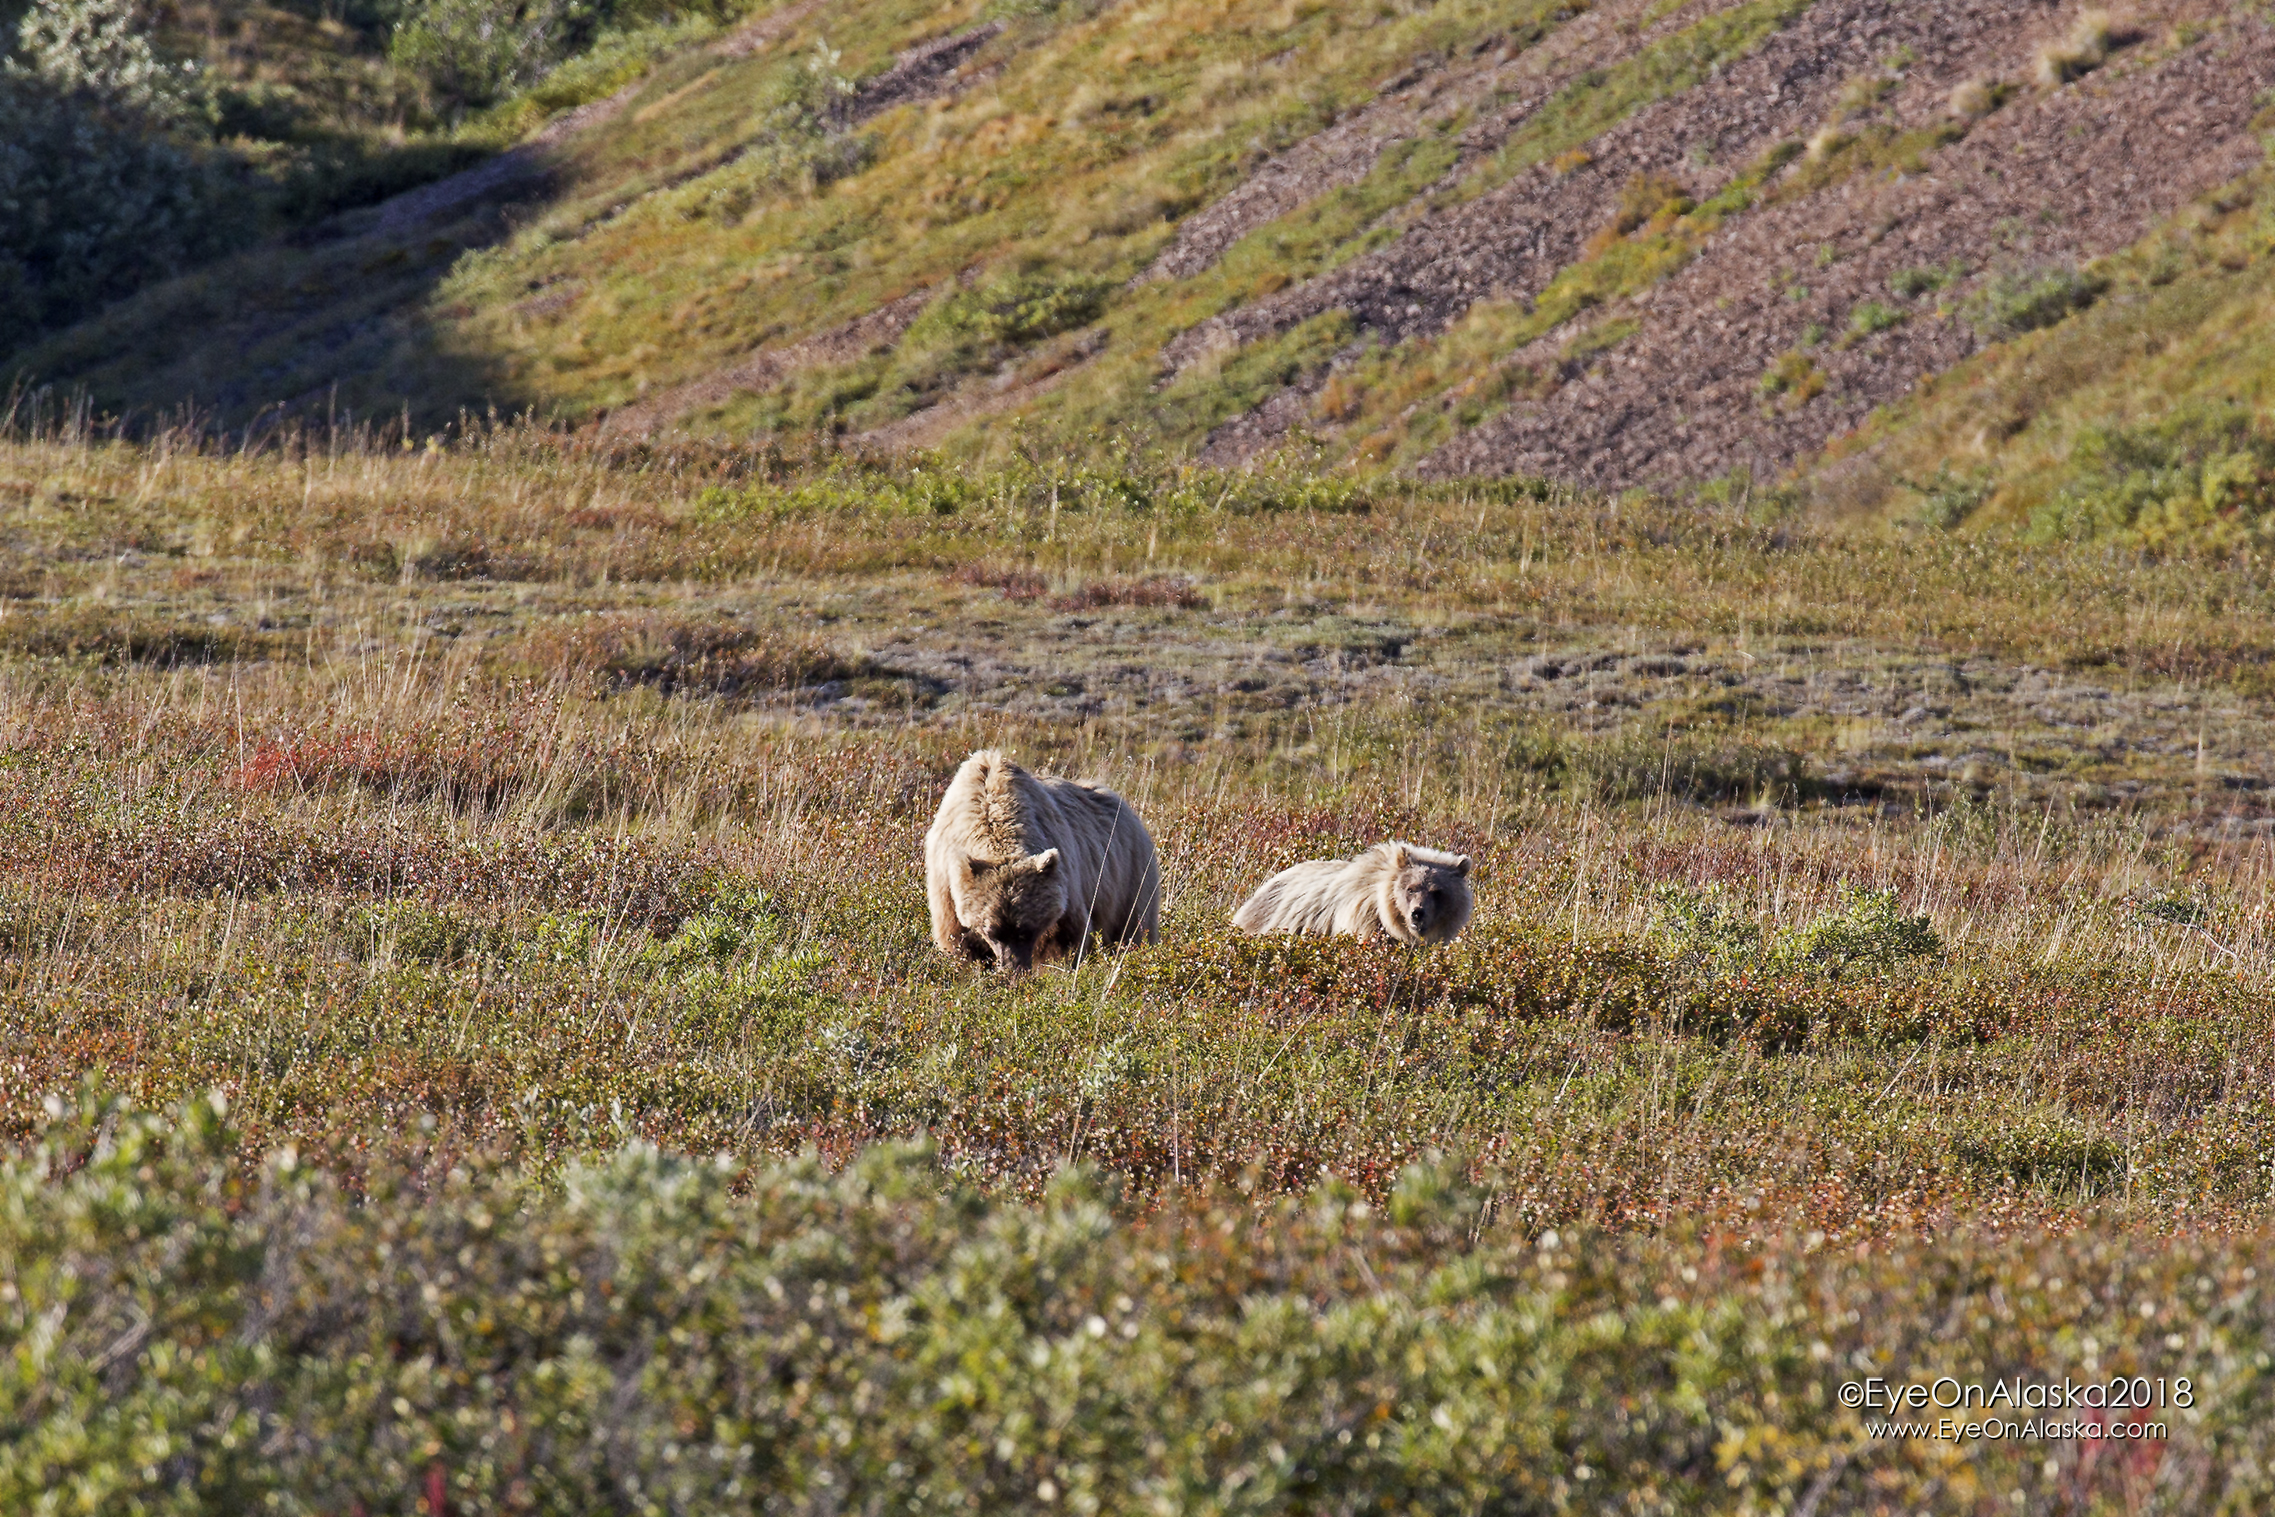 We got off the bikes and walked them downhill. Just a bit further, we found Momma bear and another cub. They saw us but paid no attention and just kept eating berries. Once we were around a corner out of their view we jumped back on the bikes and headed down the canyon and back to the Teklanika campground.  What a day!